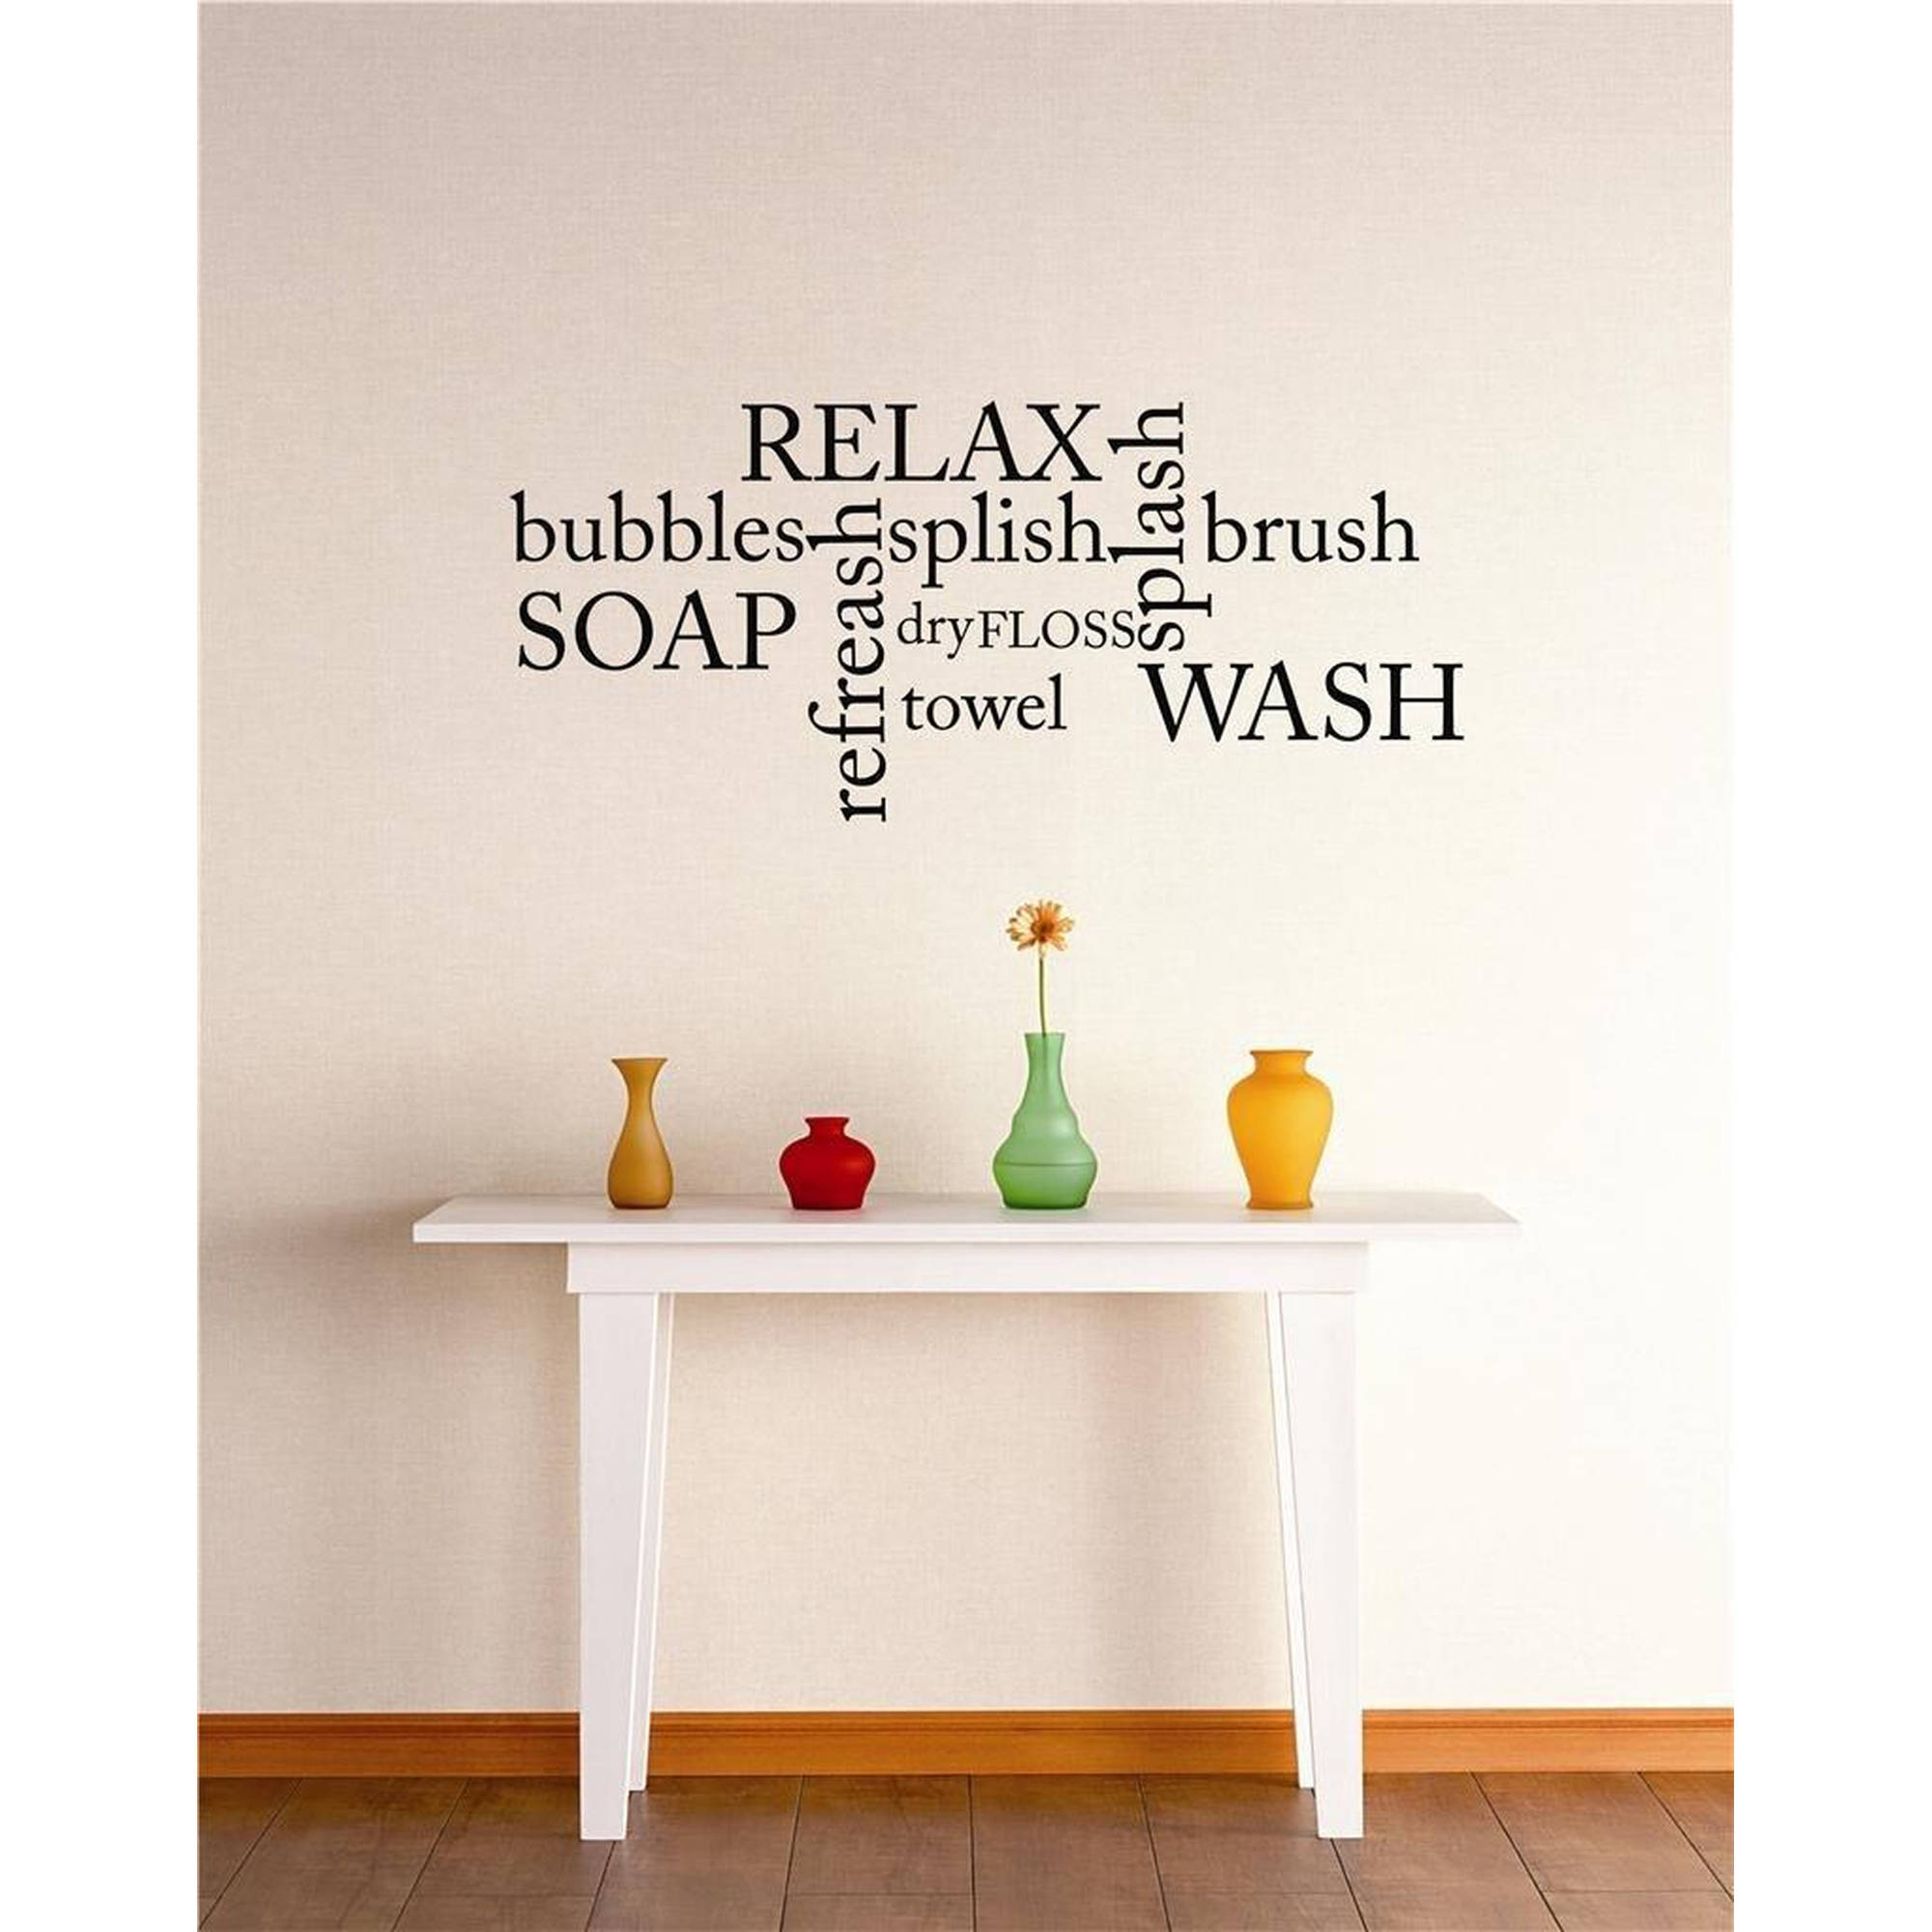 "Bubbles Relax Splish Splash Brush Wash Towel Soap Quote Bathroom Vinyl Wall Decal, 9"" x 20"", Black"